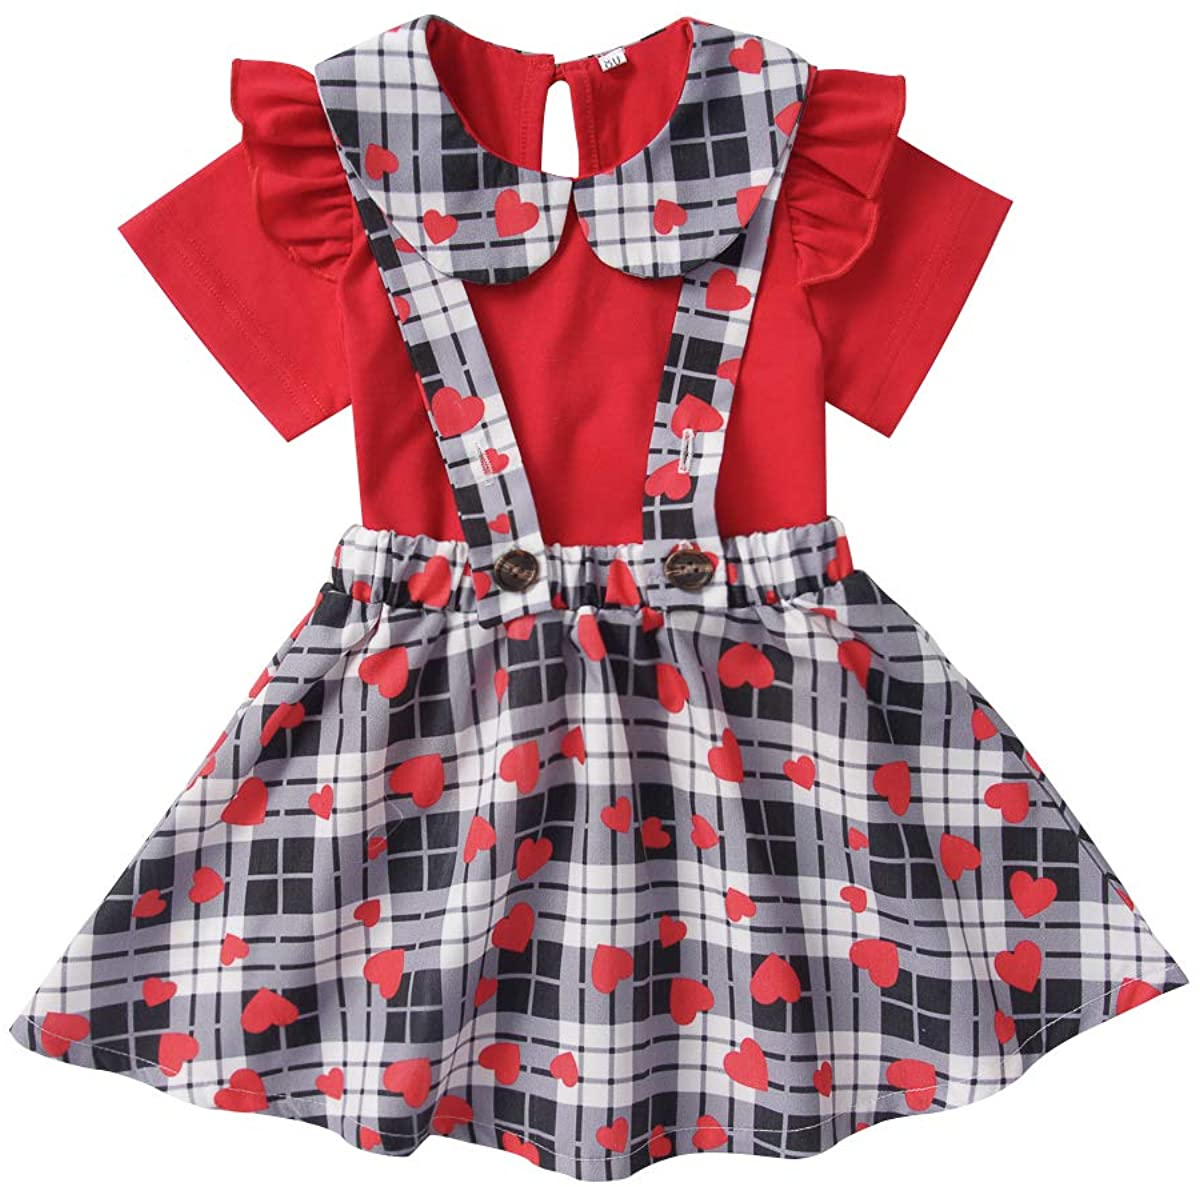 Baby Girl Valentine's Day Skirt Sets Toddler Ruffles T-Shirt + Heart Printed Plaid Suspenders Outfits